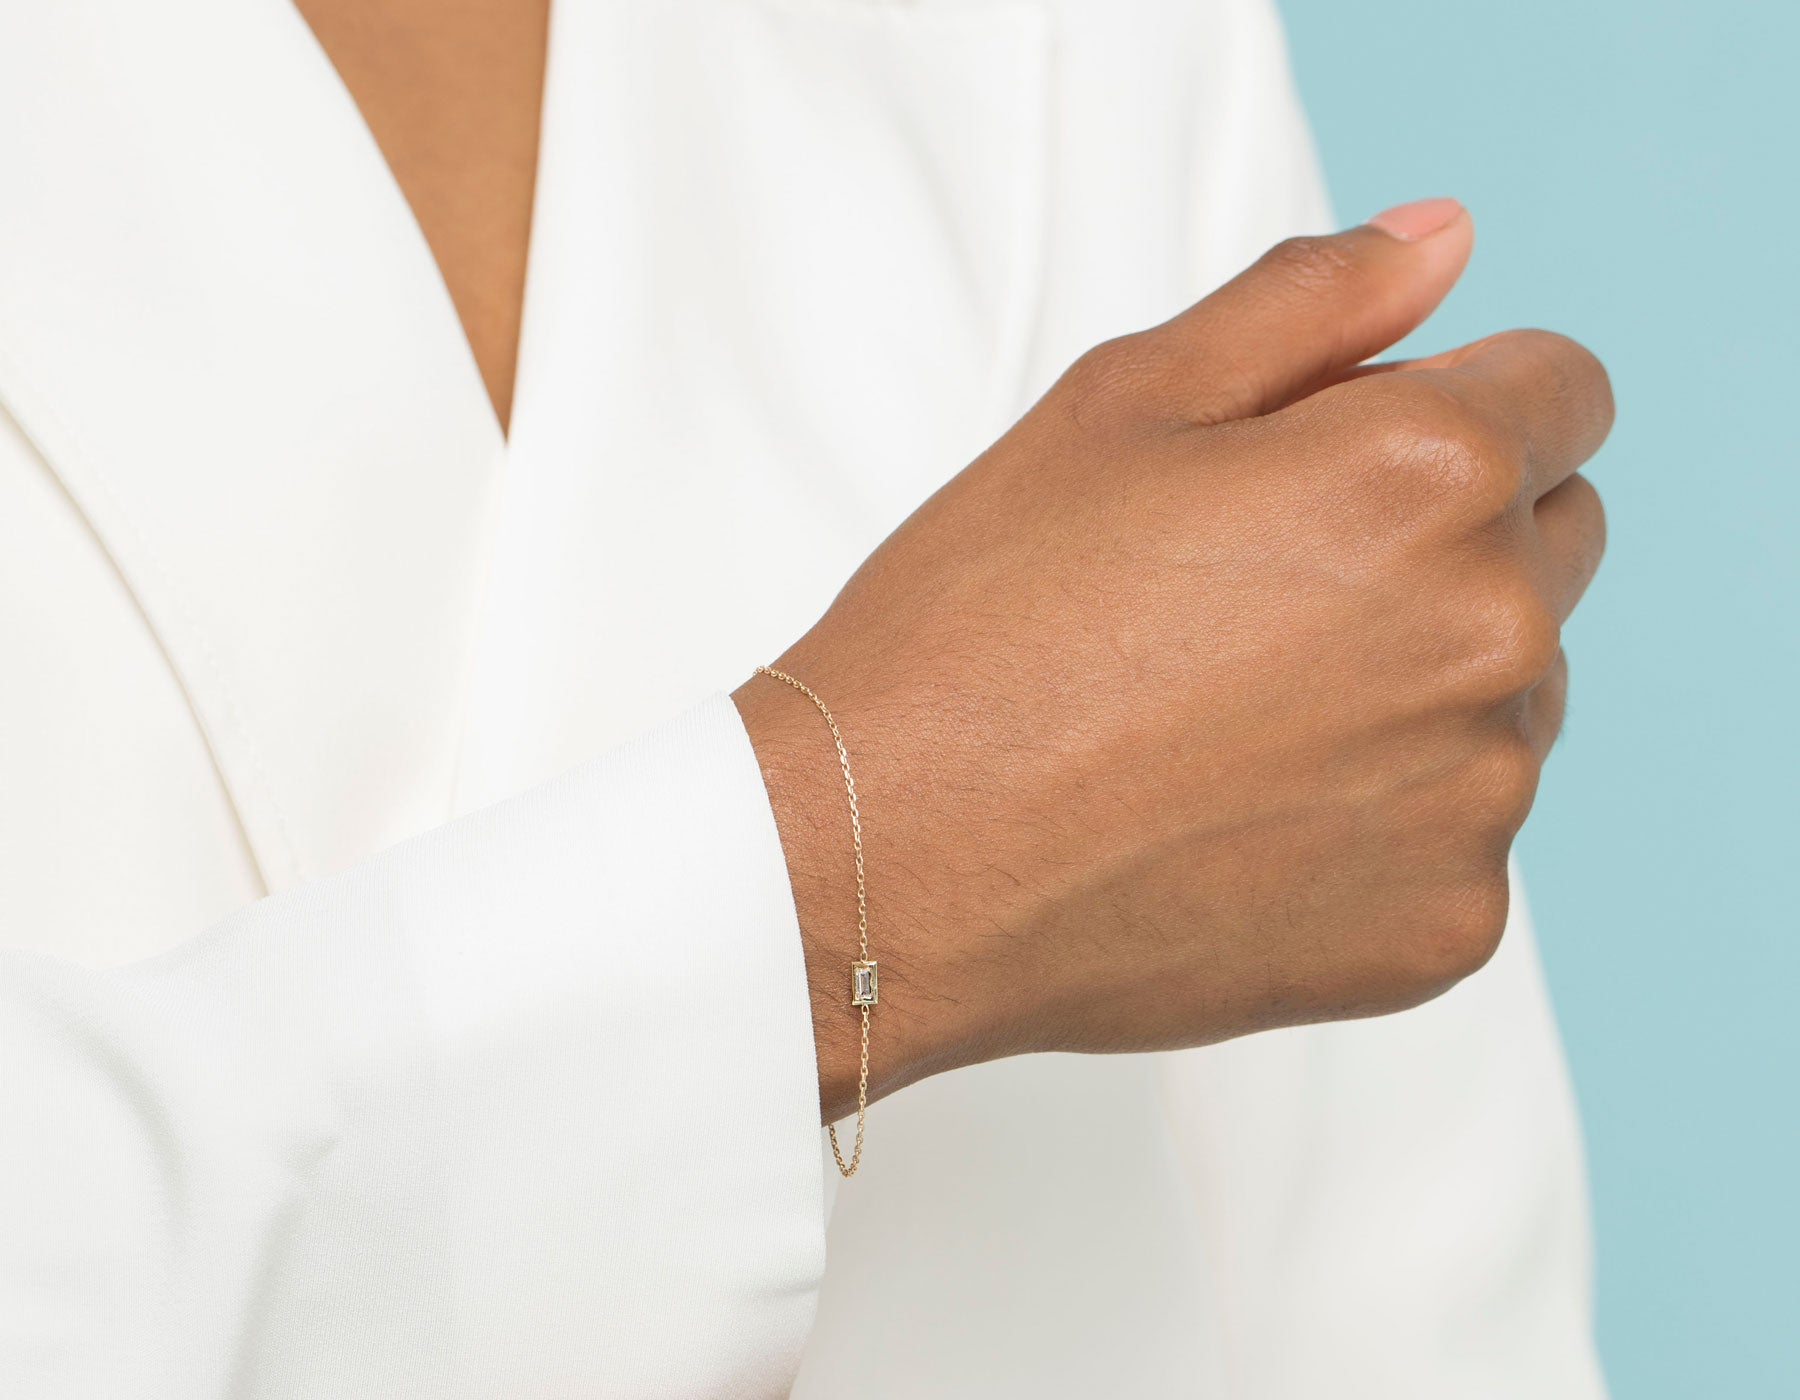 Model wearing dainty minimalist Baguette Diamond Bezel Bracelet by Vrai, 14K White Gold